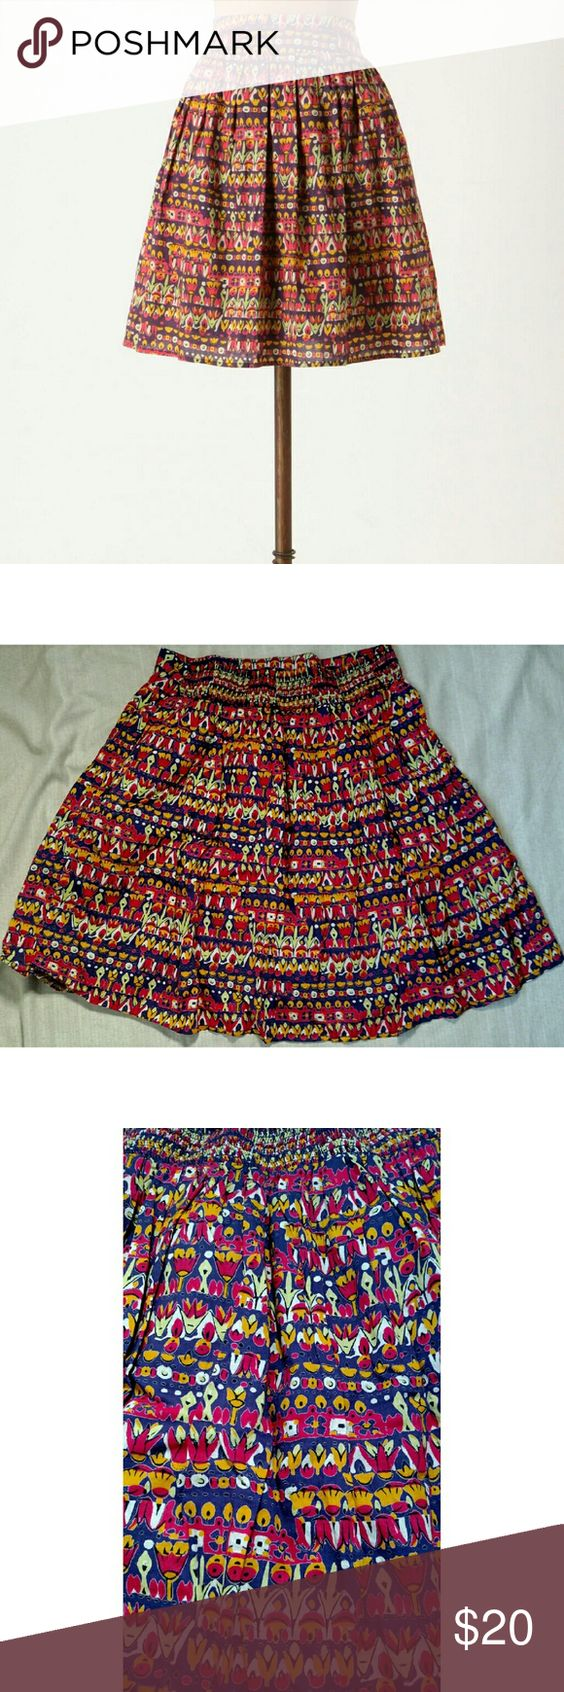 Edme & Esyllite Anthro 'cultivation' skirt size M 100% cotton. 28in waist unstretched. 22 In long.  Excellent condition. Anthropologie Skirts Midi